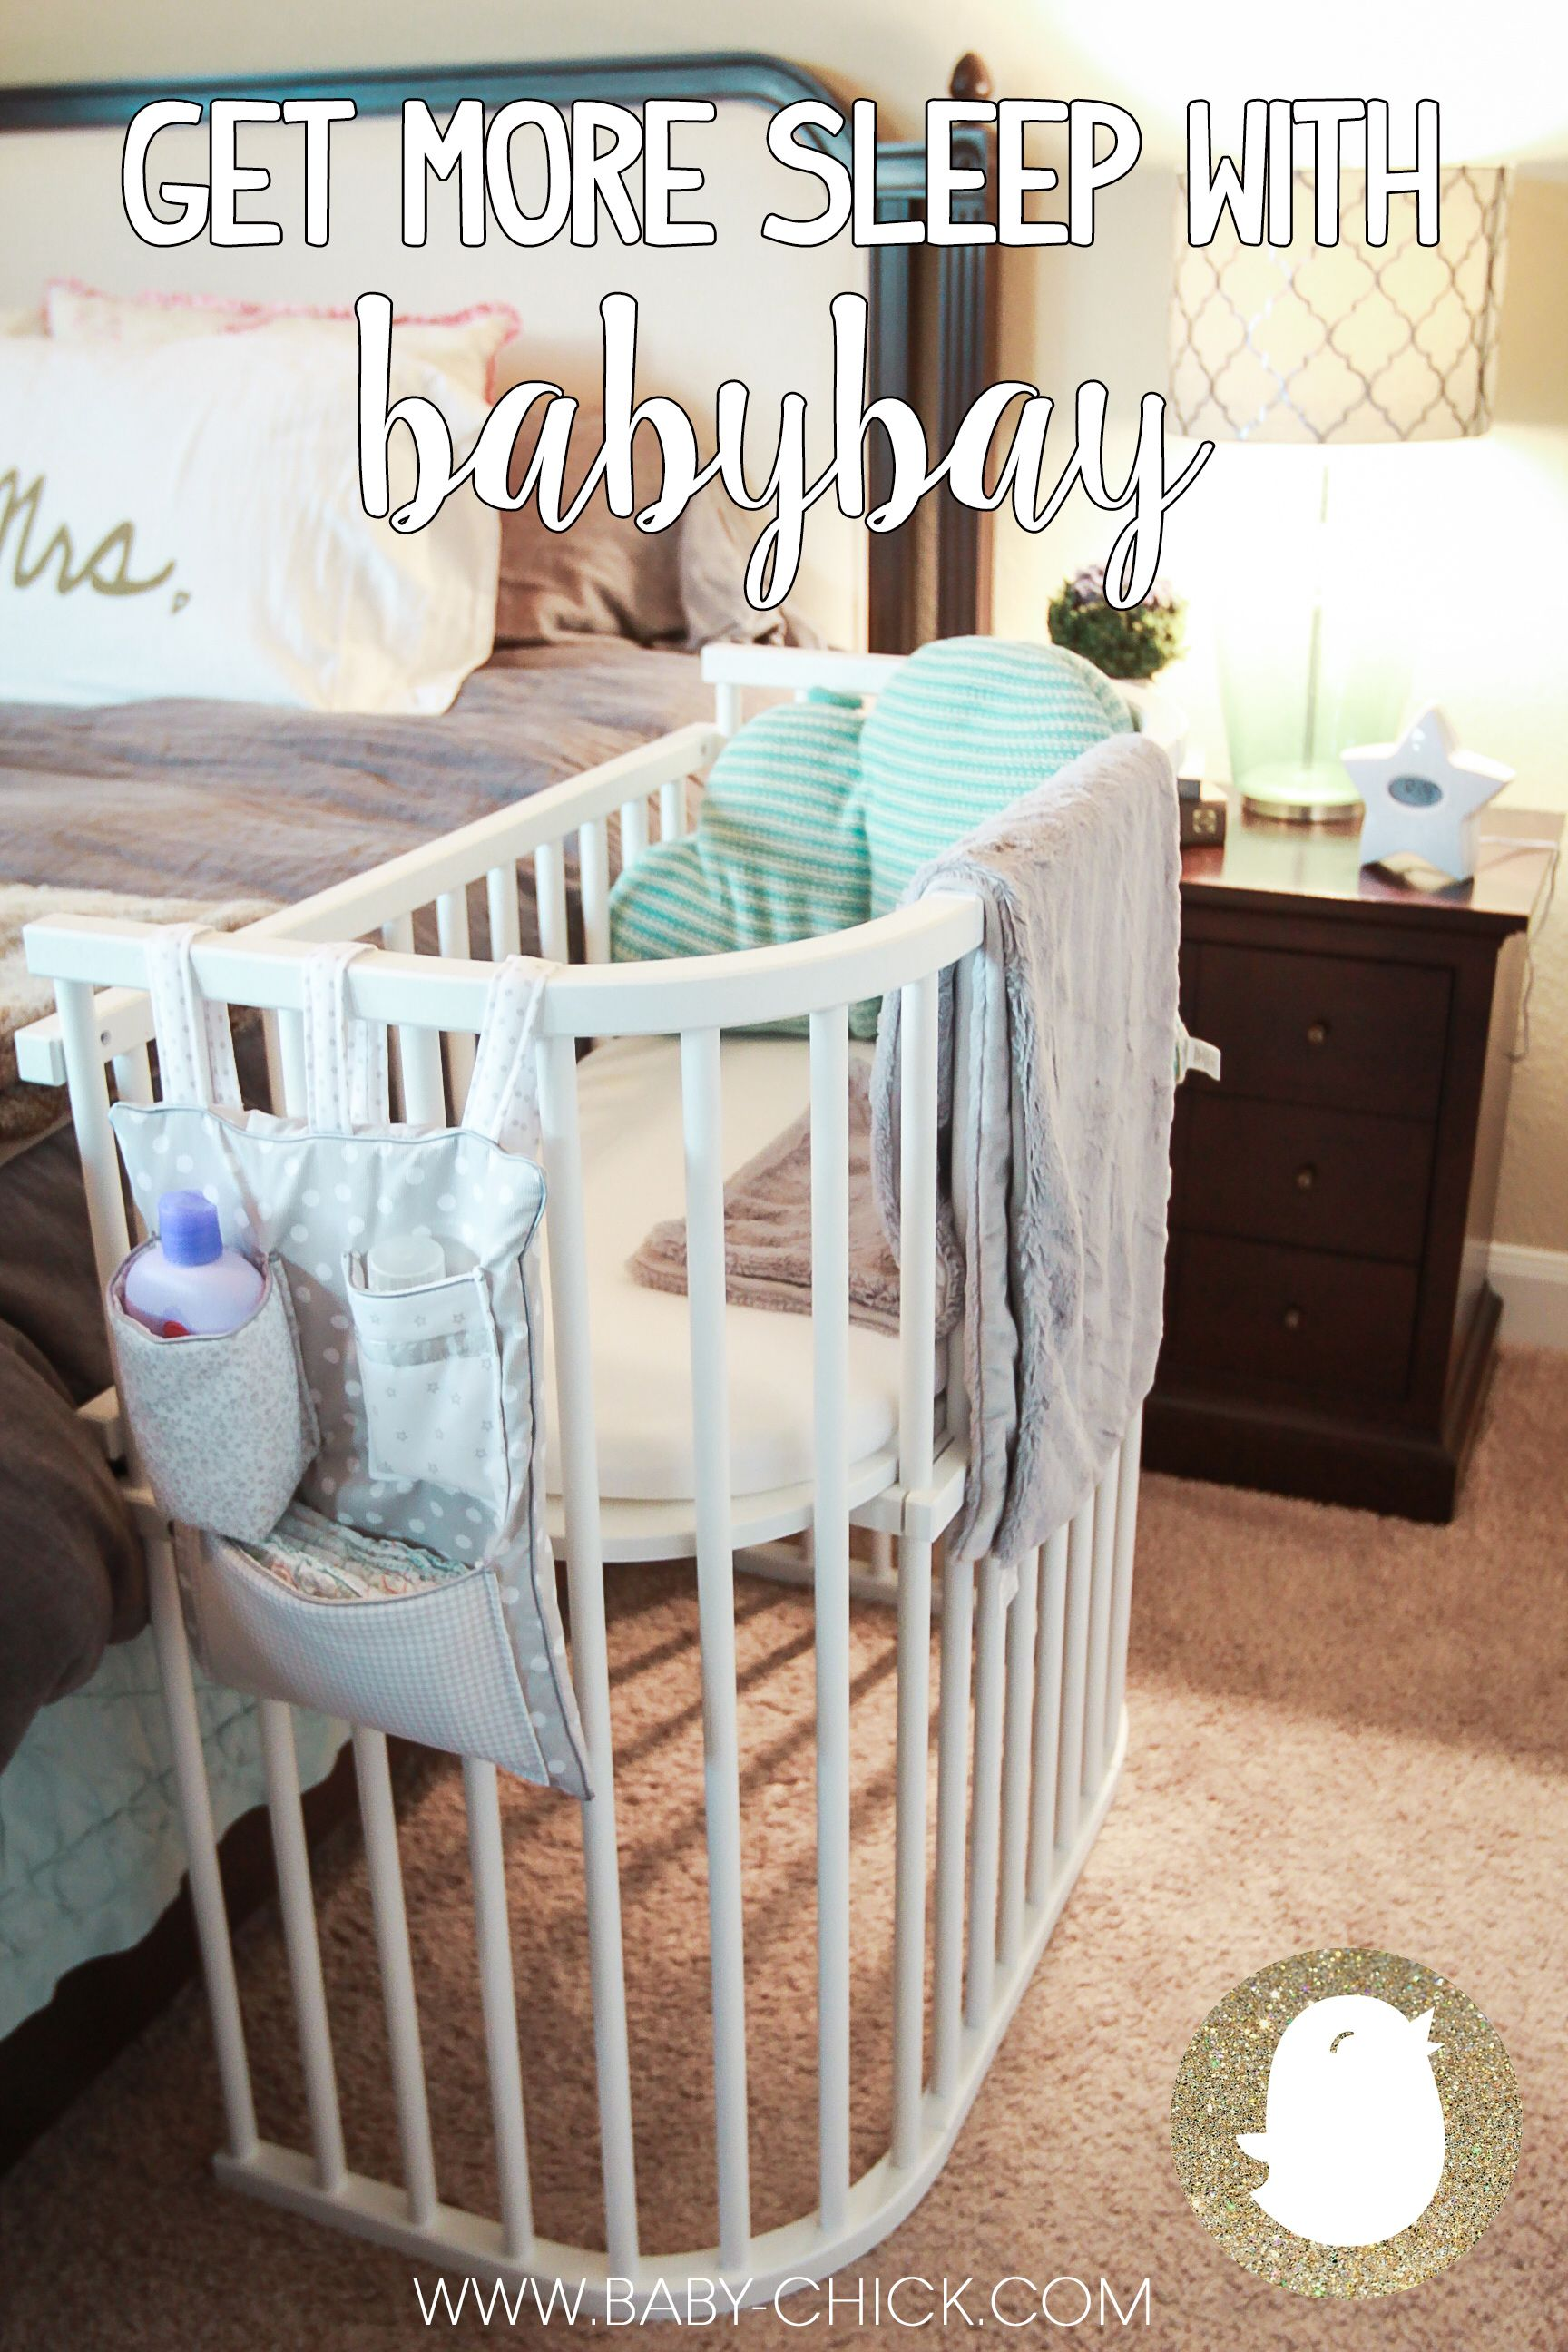 Baby bed next to bed - Get More Sleep With Babybay Baby Bedsbaby